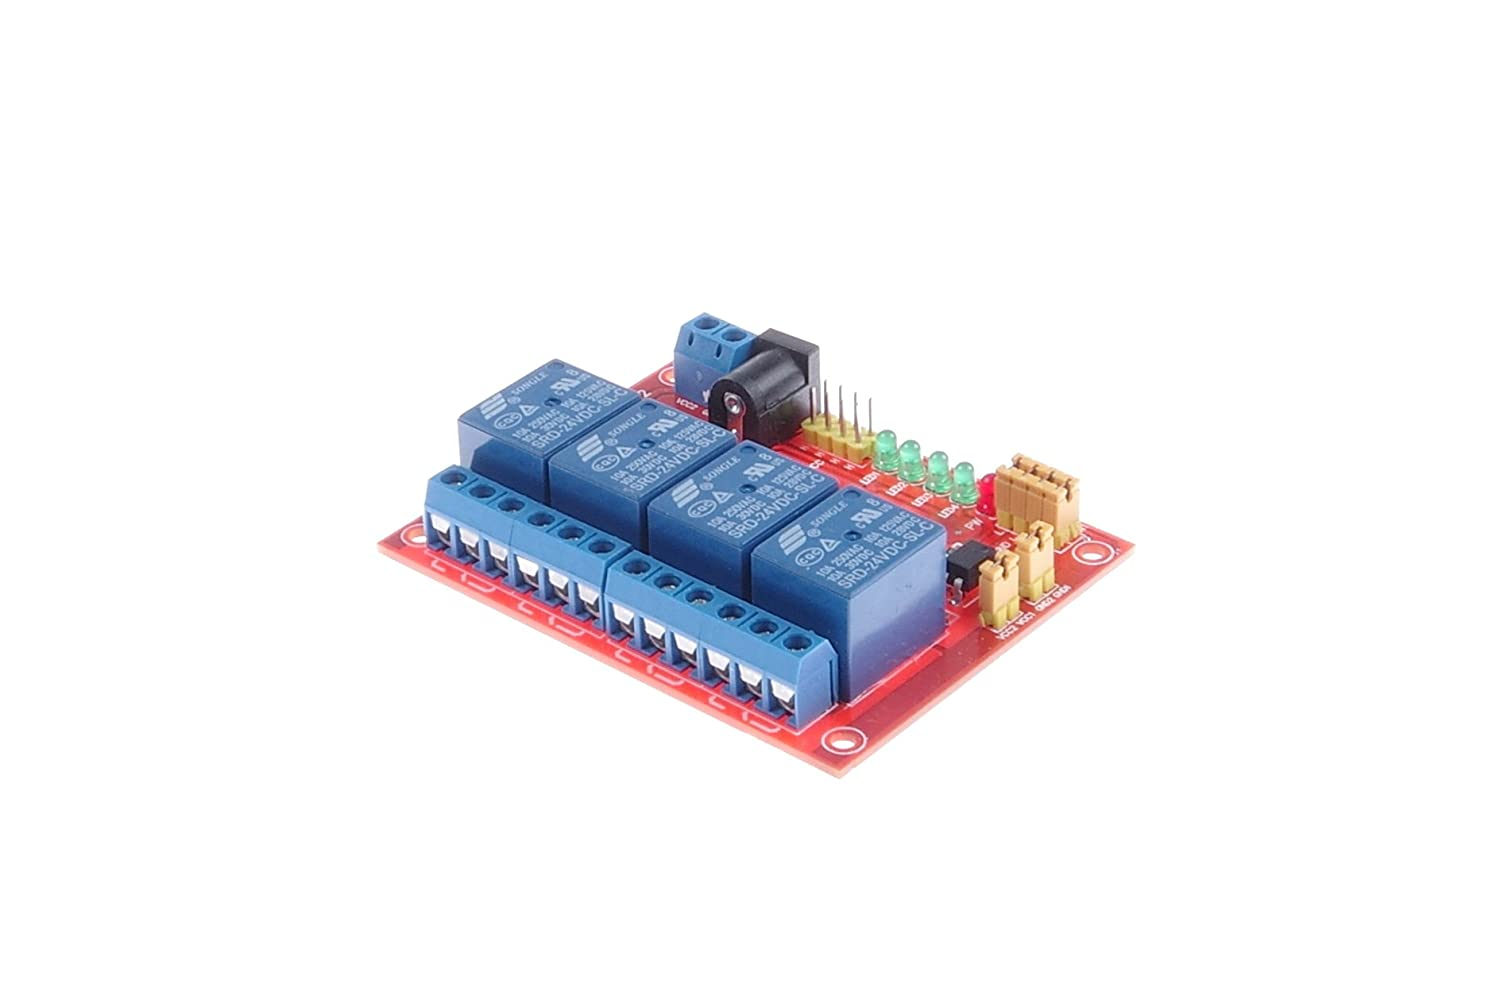 Knacro Dc 24v 4 Channel Relay Module Optocoupler Dc5v To Dc30v Converter By 74hc14 Isolation High Low Level Trigger Optional For Scm Expansion Board Ttl Plc Control Home Audio